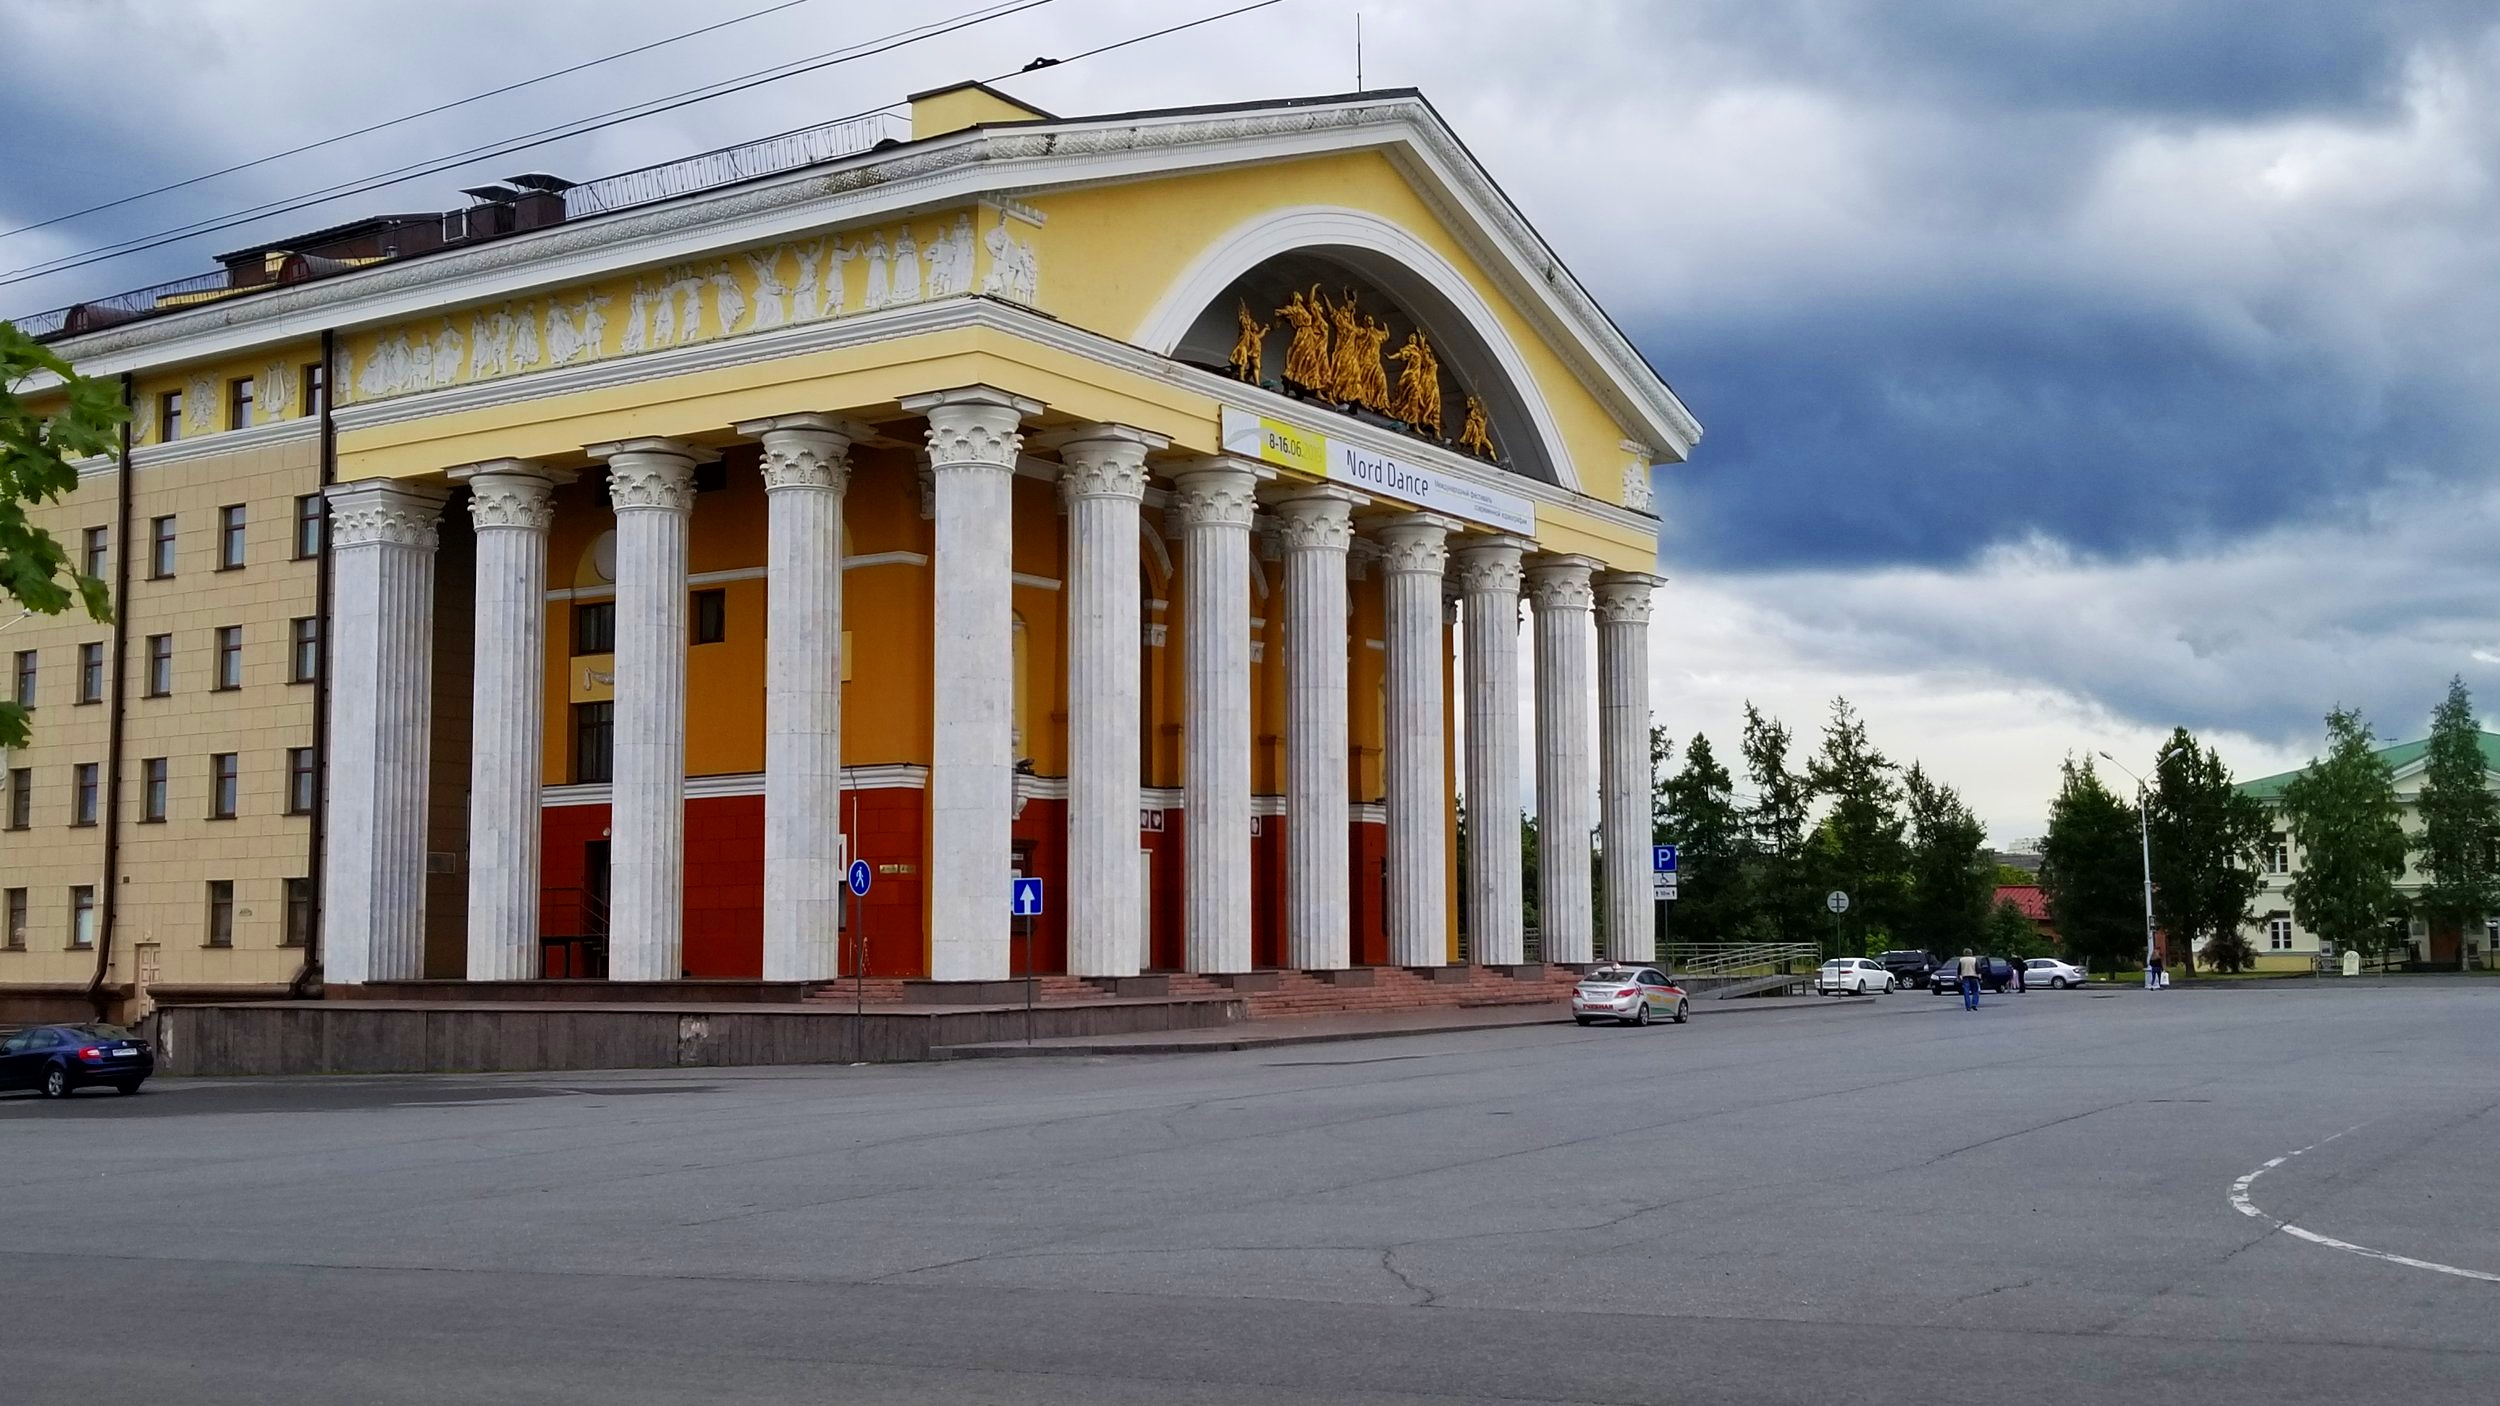 Main theater in the city